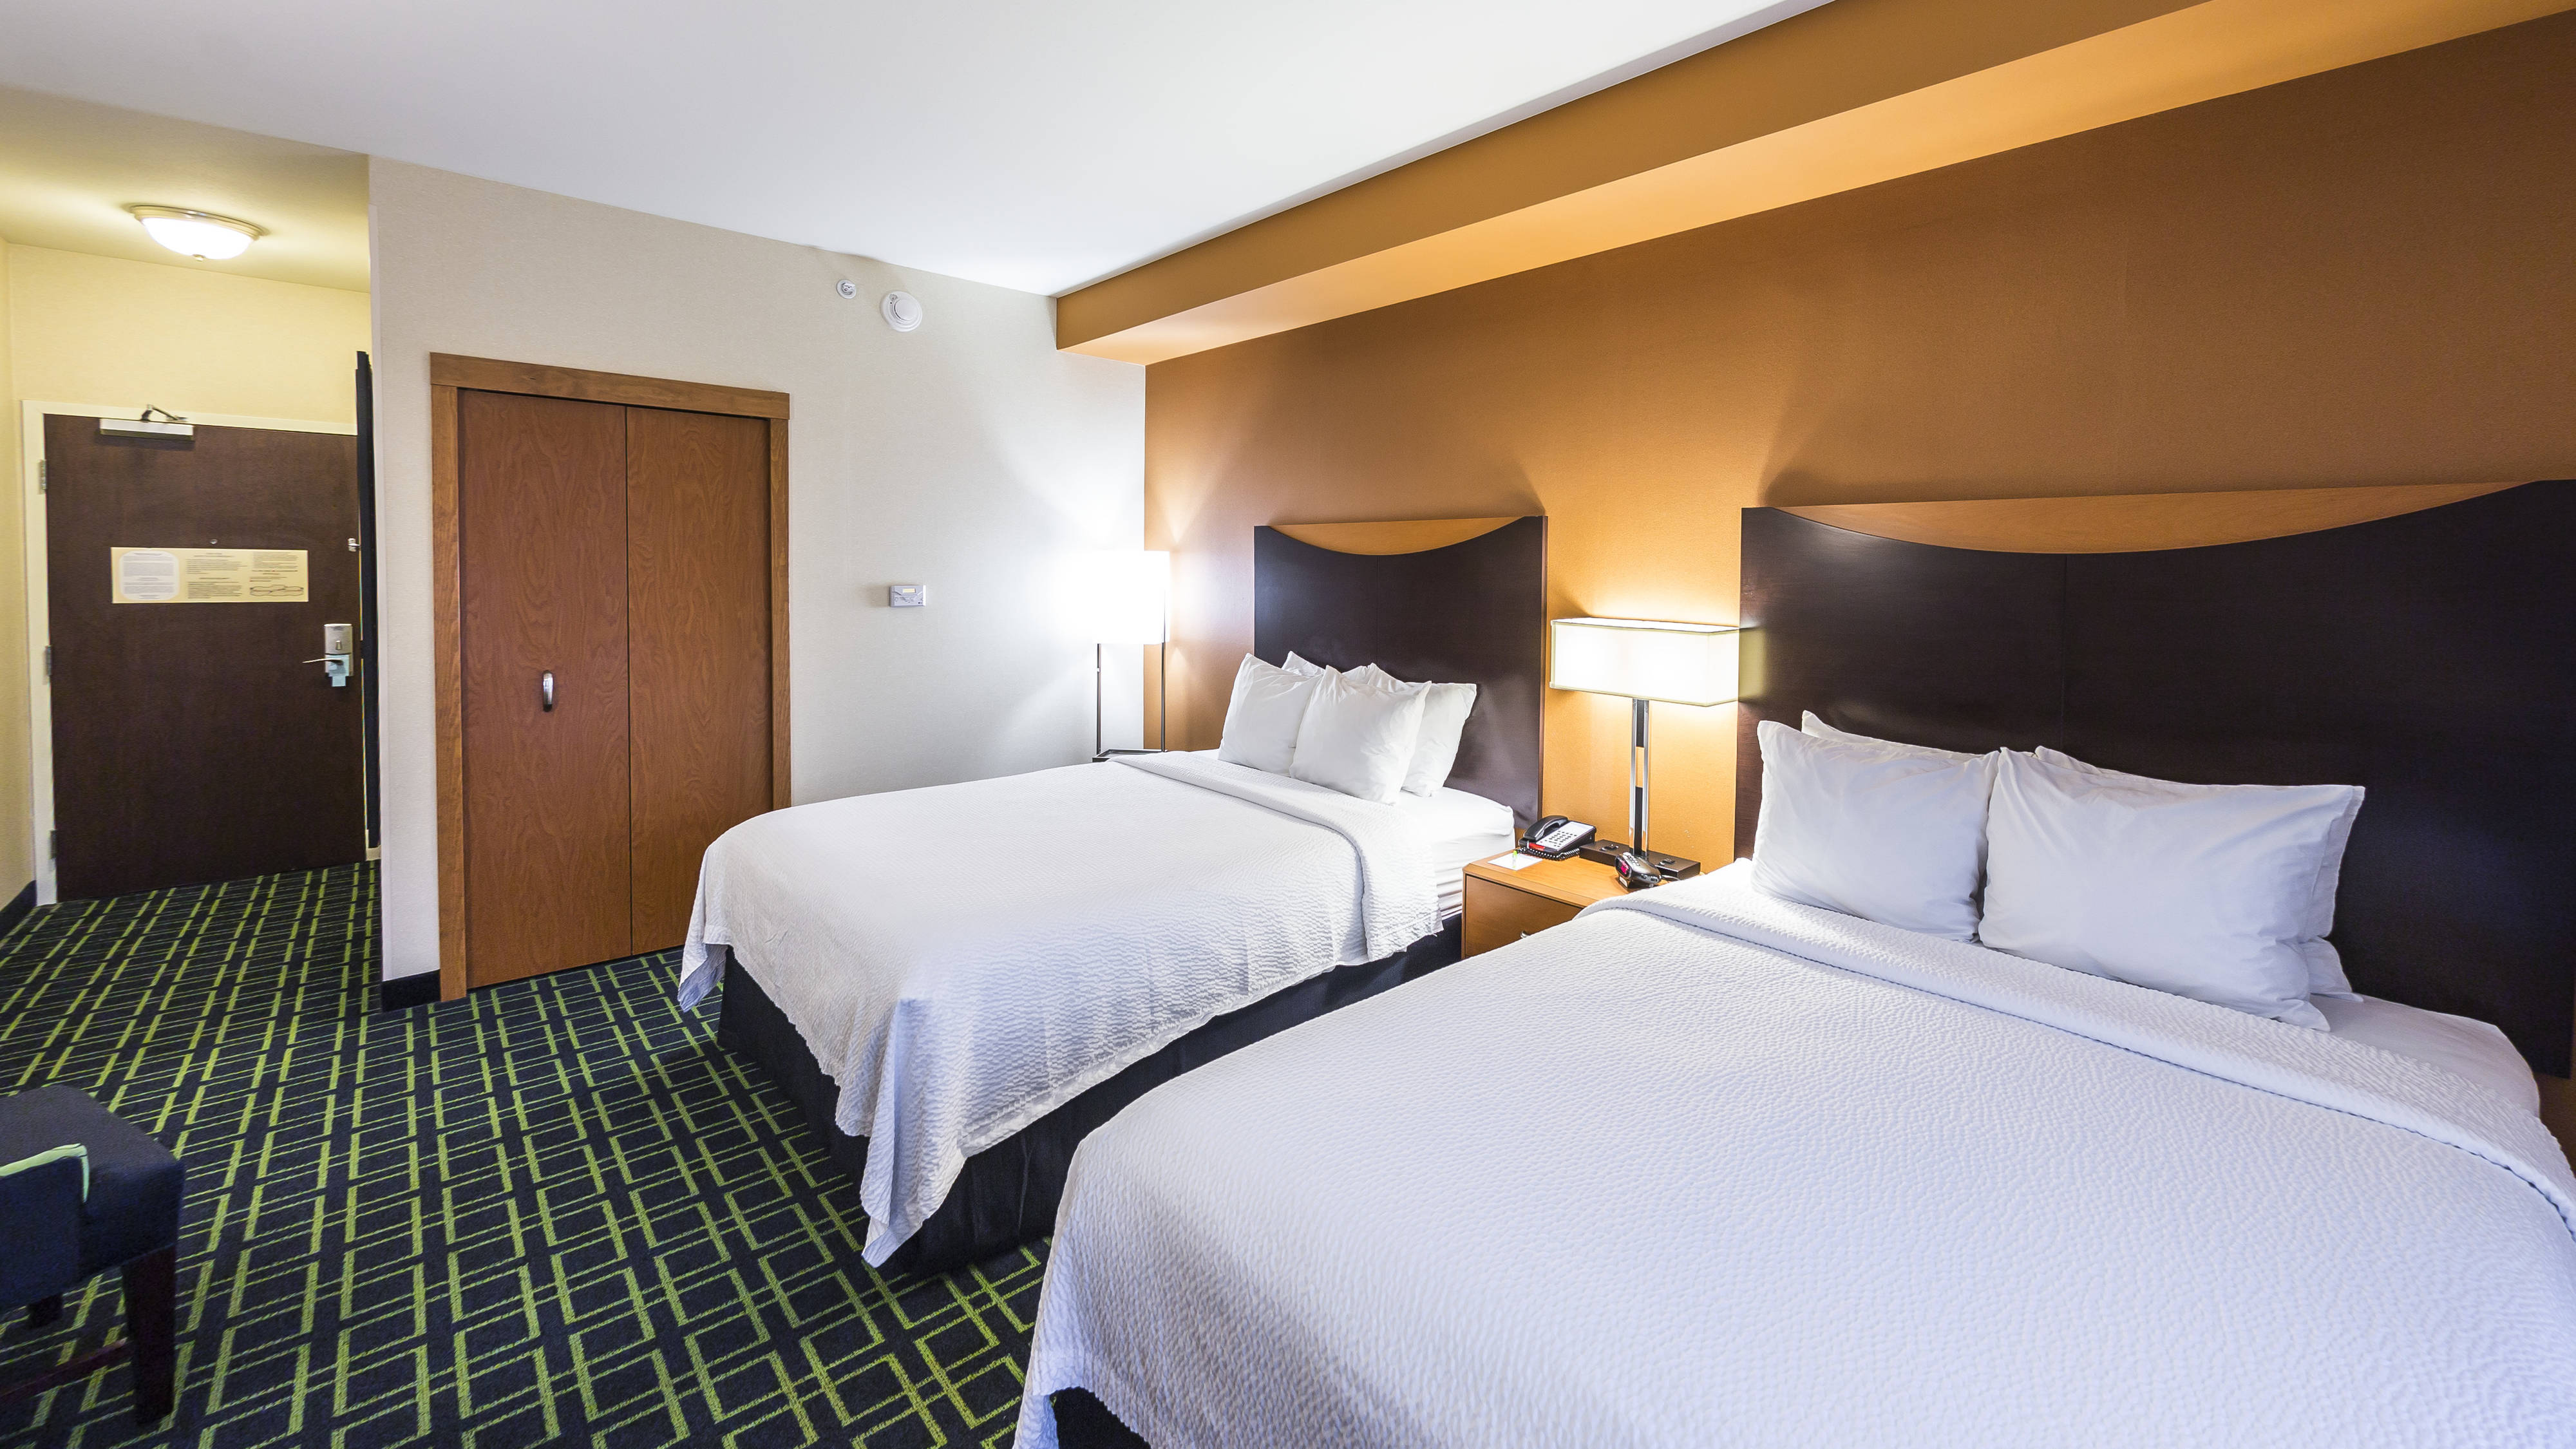 Fairfield Inn & Suites New Cumberland Hotel Room